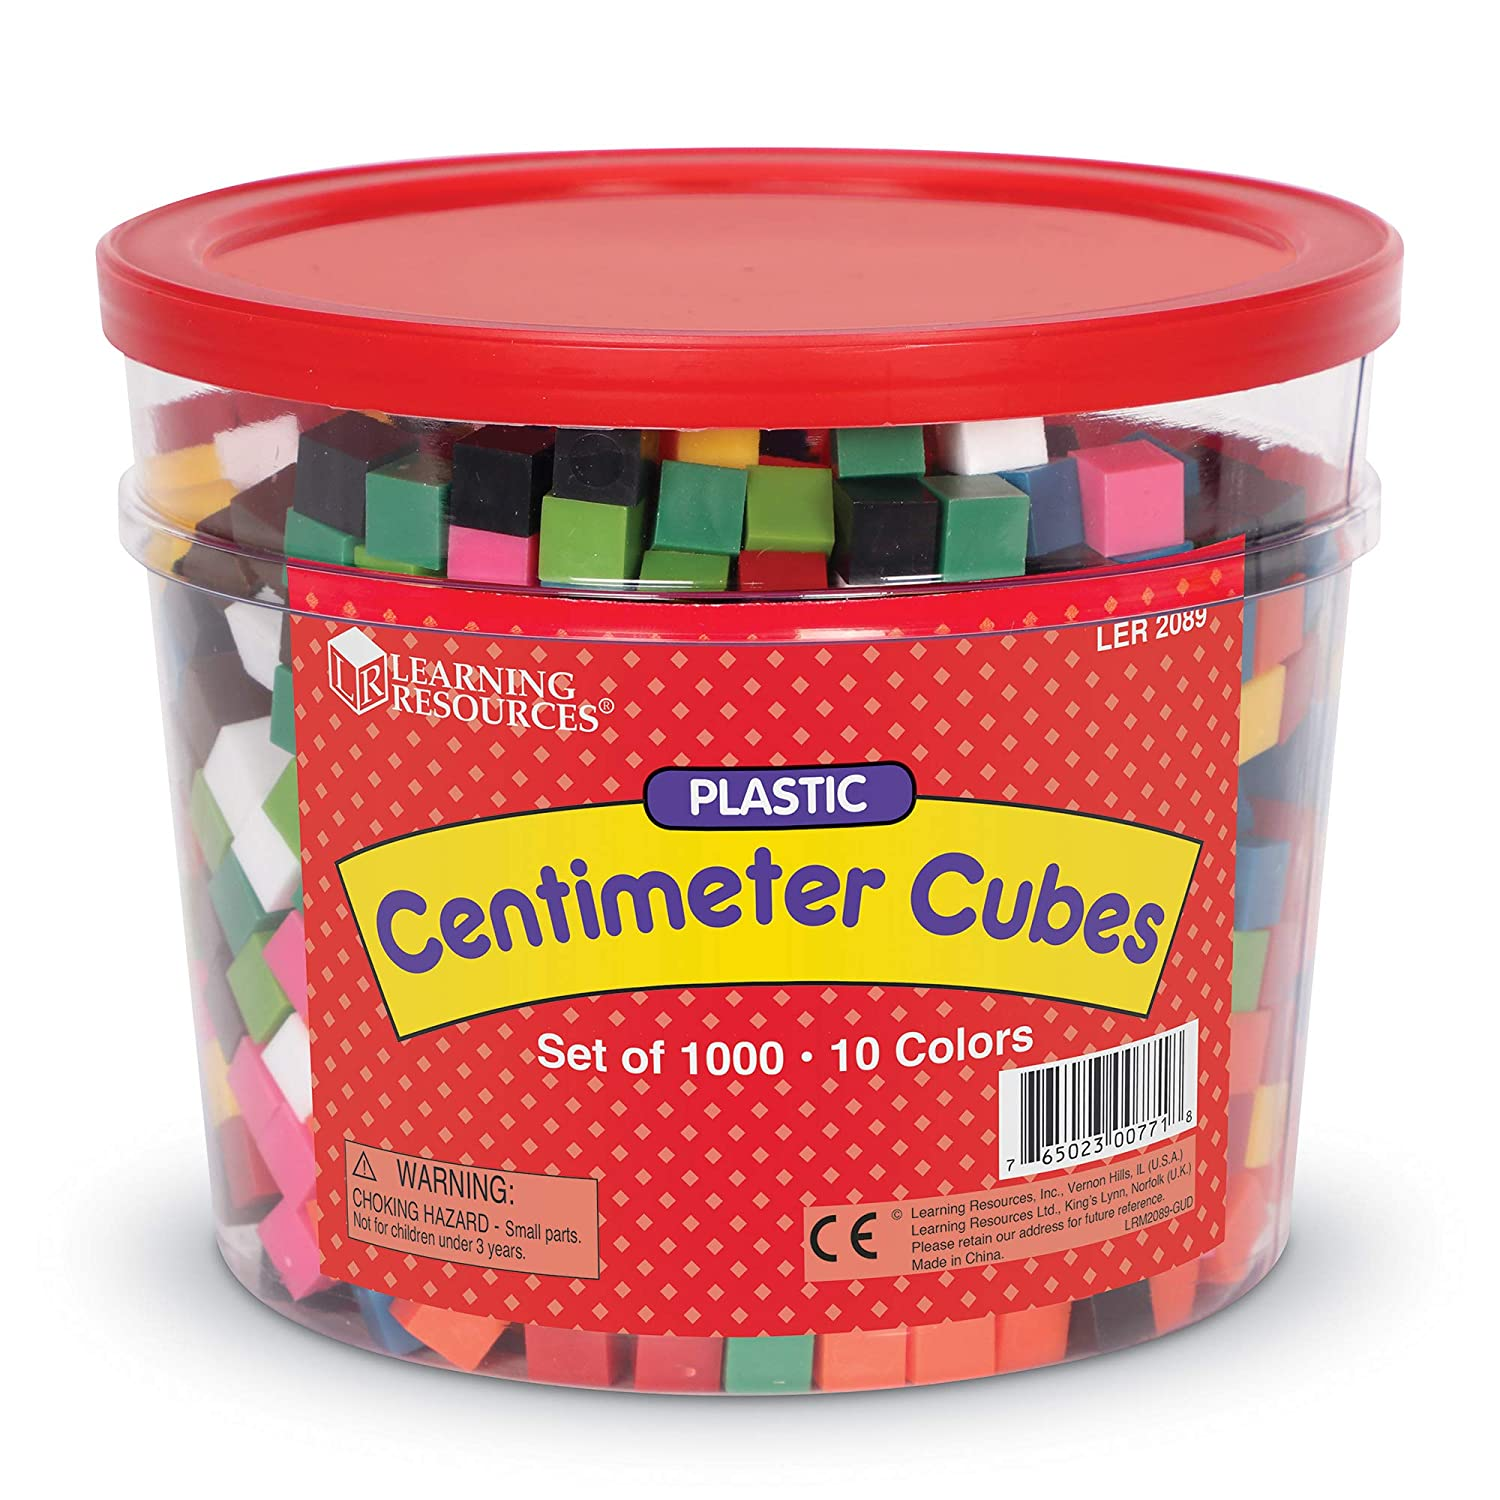 graphic regarding Centimeter Cubes Printable identified as Studying Products Centimeter Cubes, Preset of 1000